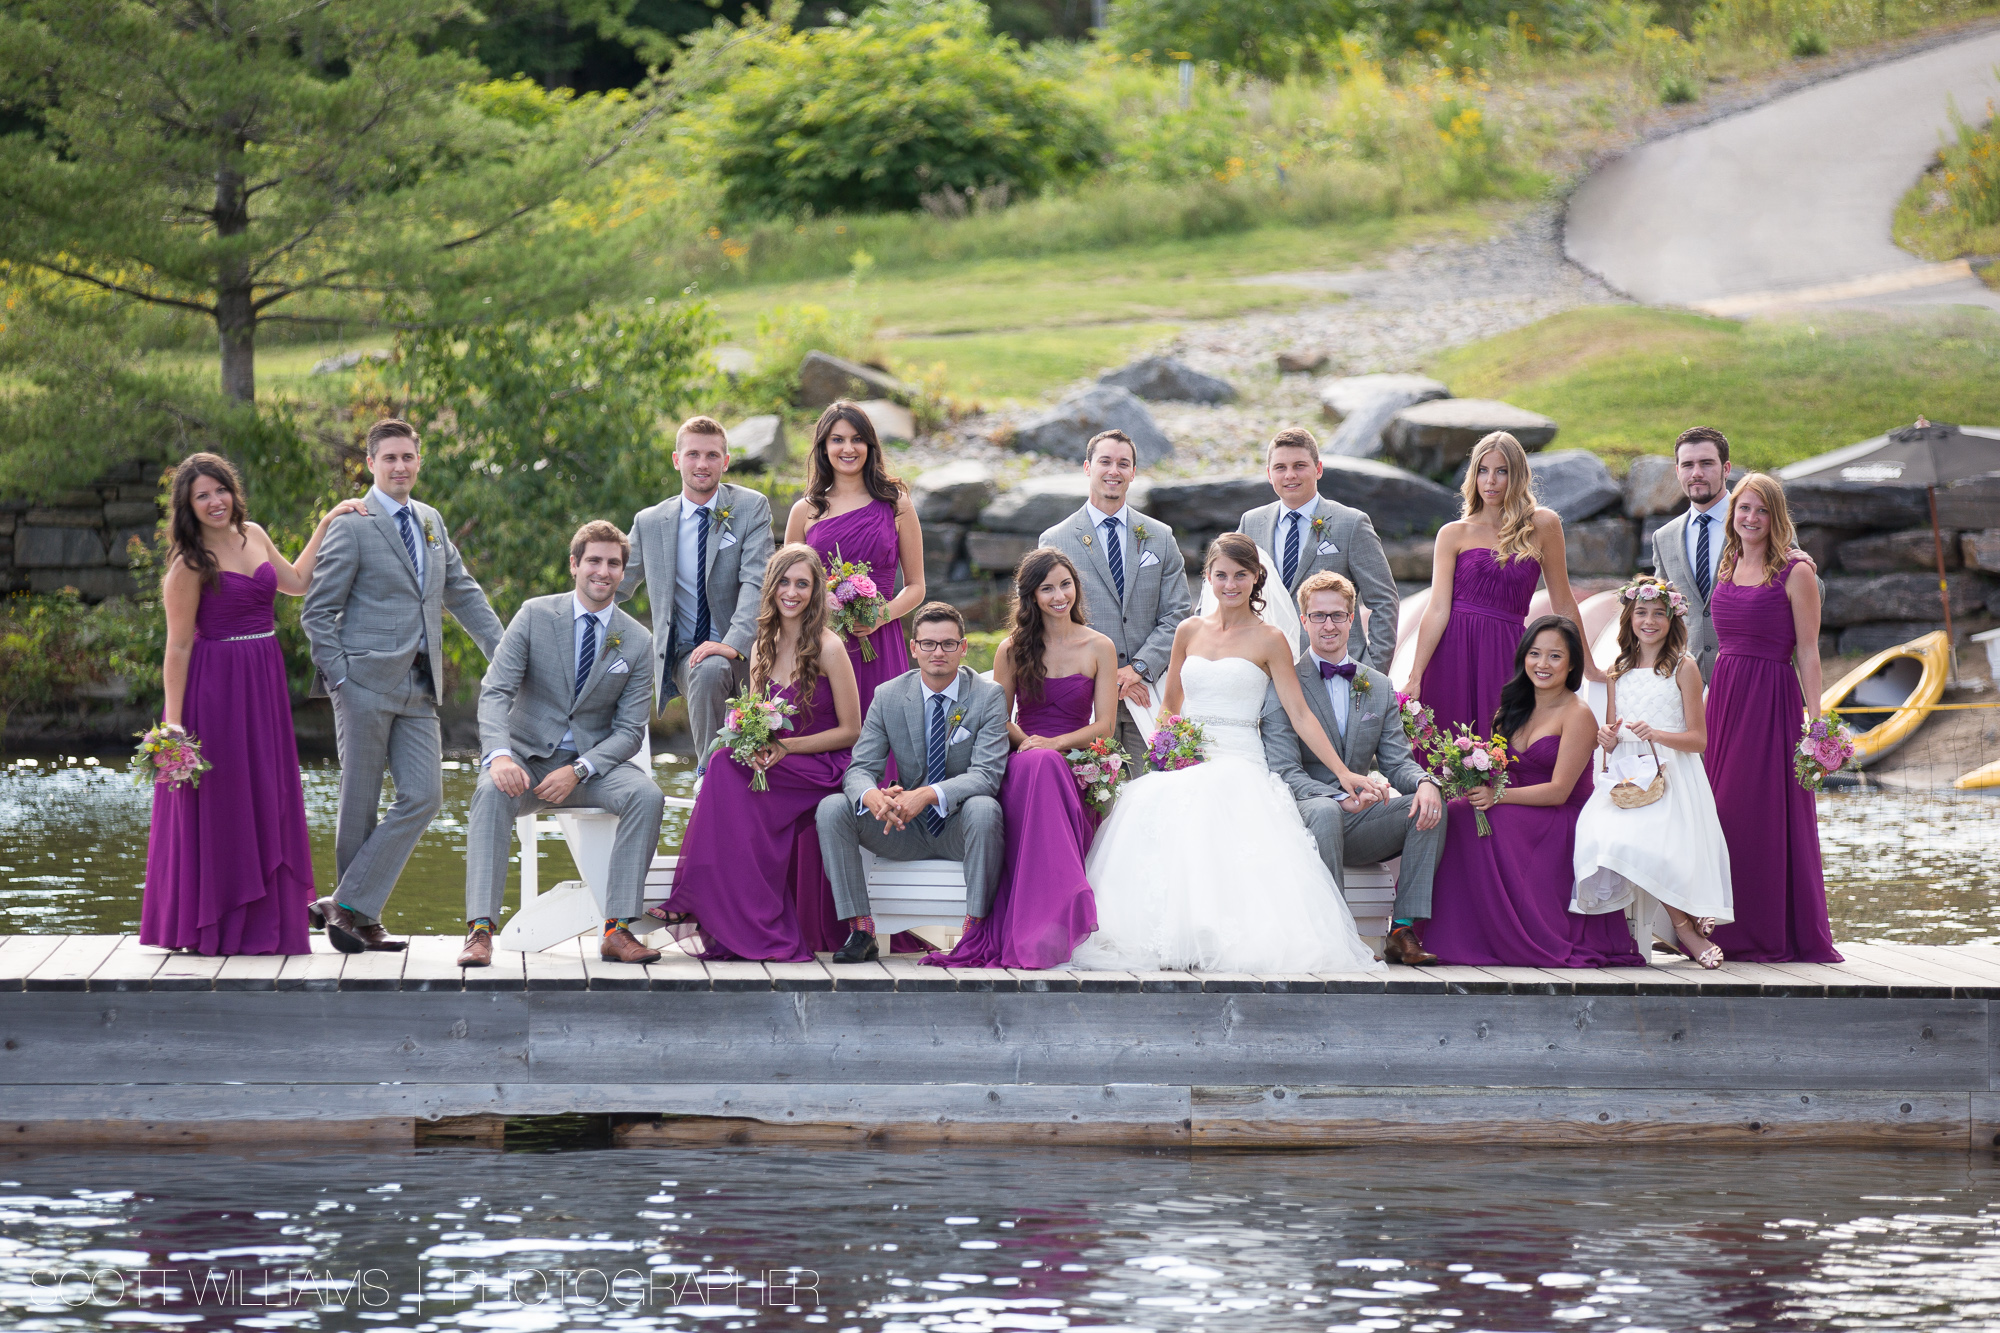 muskoka-wedding-photograph-013.jpg